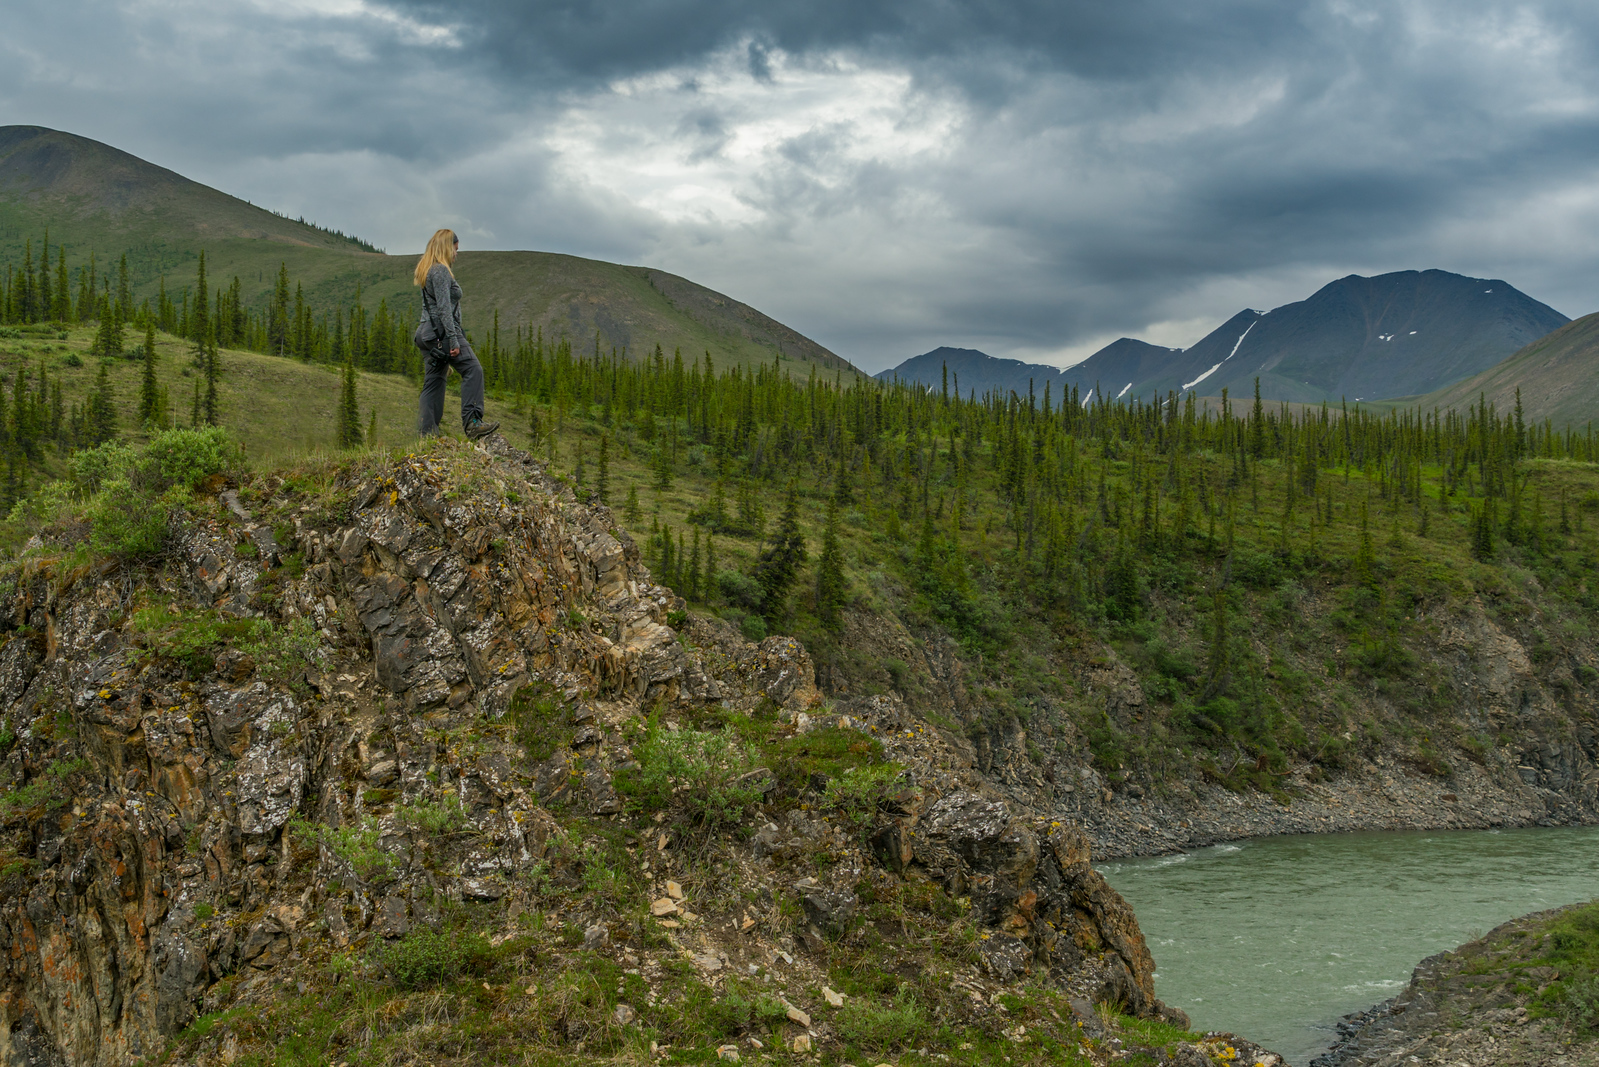 Keeping a lookout for bears in Yukon, Canada